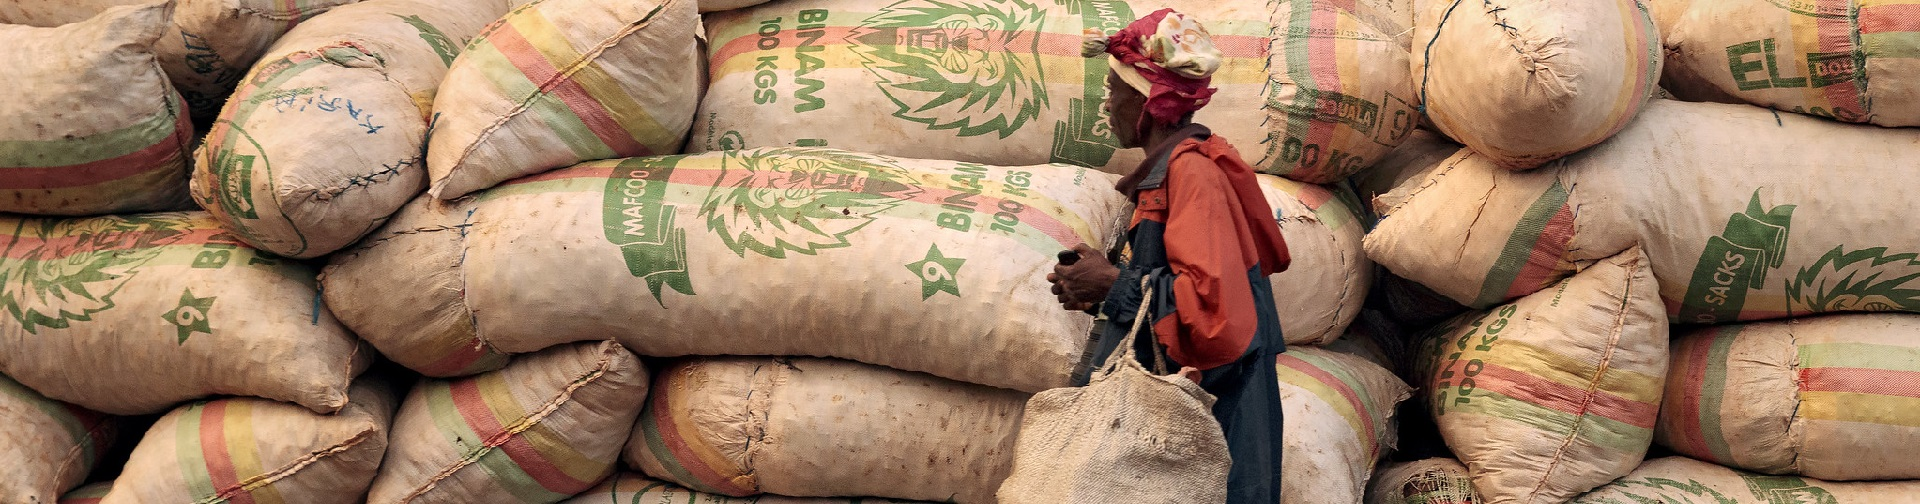 Food and agricultural trade in the new policy environment: How can WTO members support economic recovery and resilience?